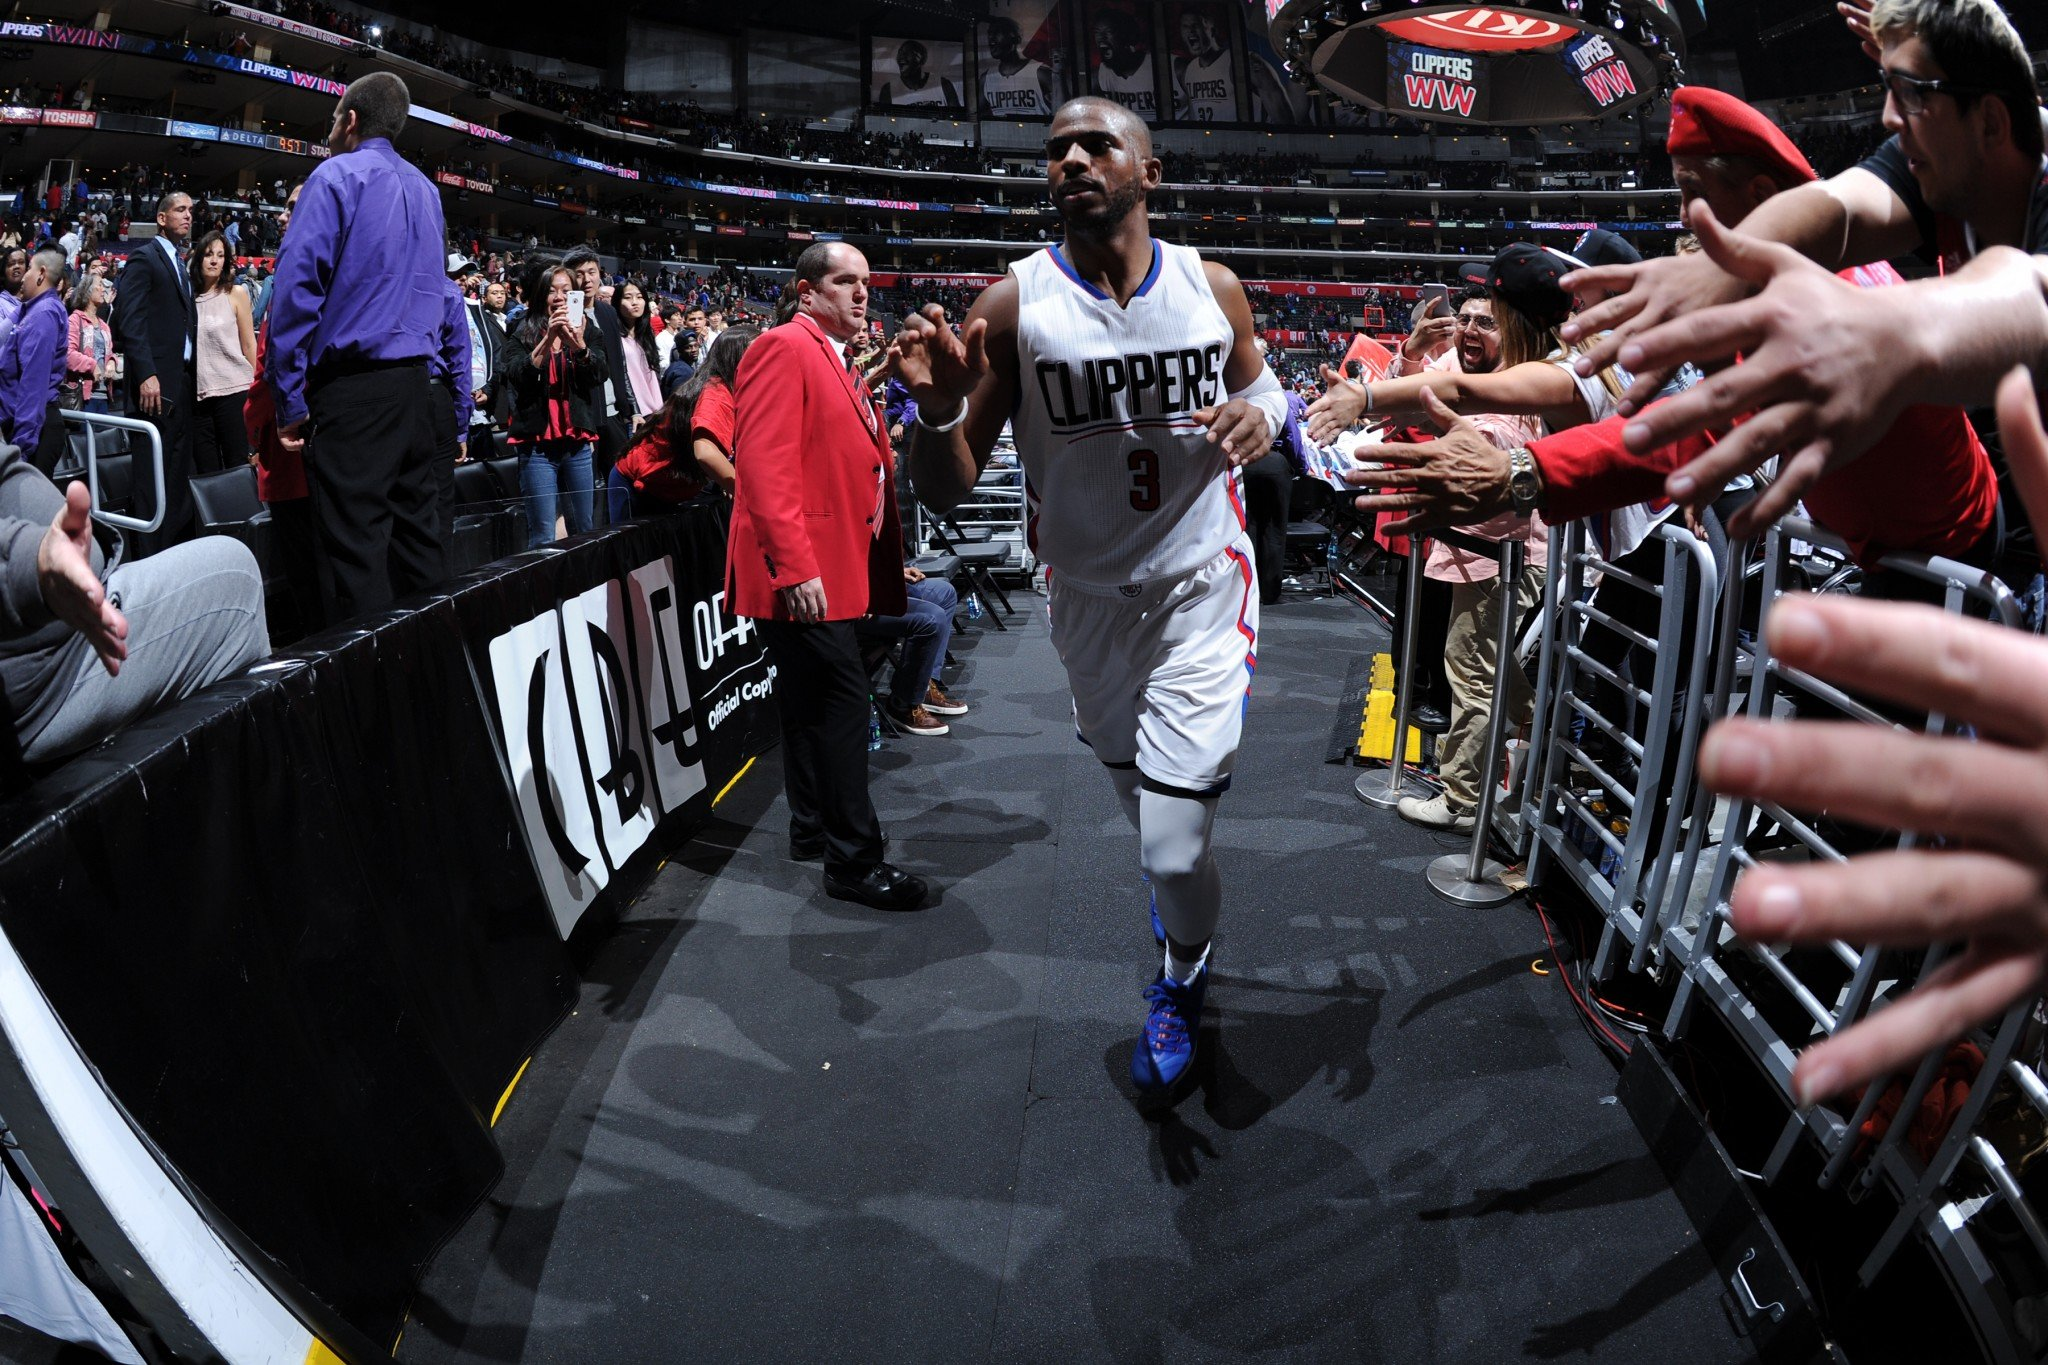 Chris Paul shakes hands with fans at Staples Center after a game against the New York Knicks on March 11, 2016. (Getty Images)